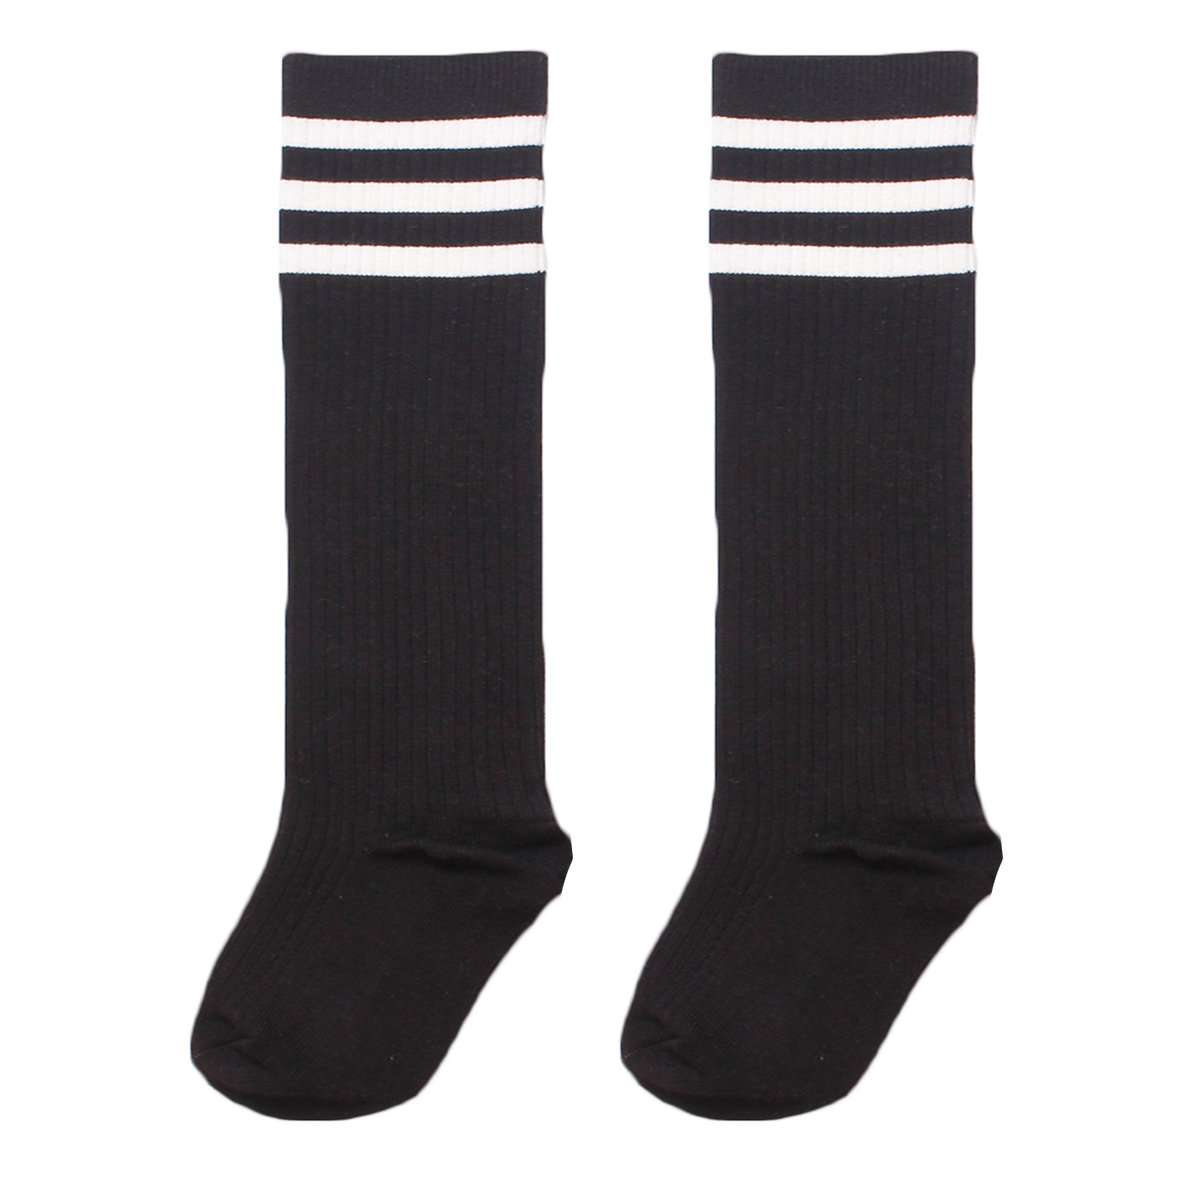 Zando Girl's Cable Knee High Socks Uniform Knit Tube Cotton Socks Kids Striped Comfort Stockings Athletic School Sock MNFUDS1992S0000